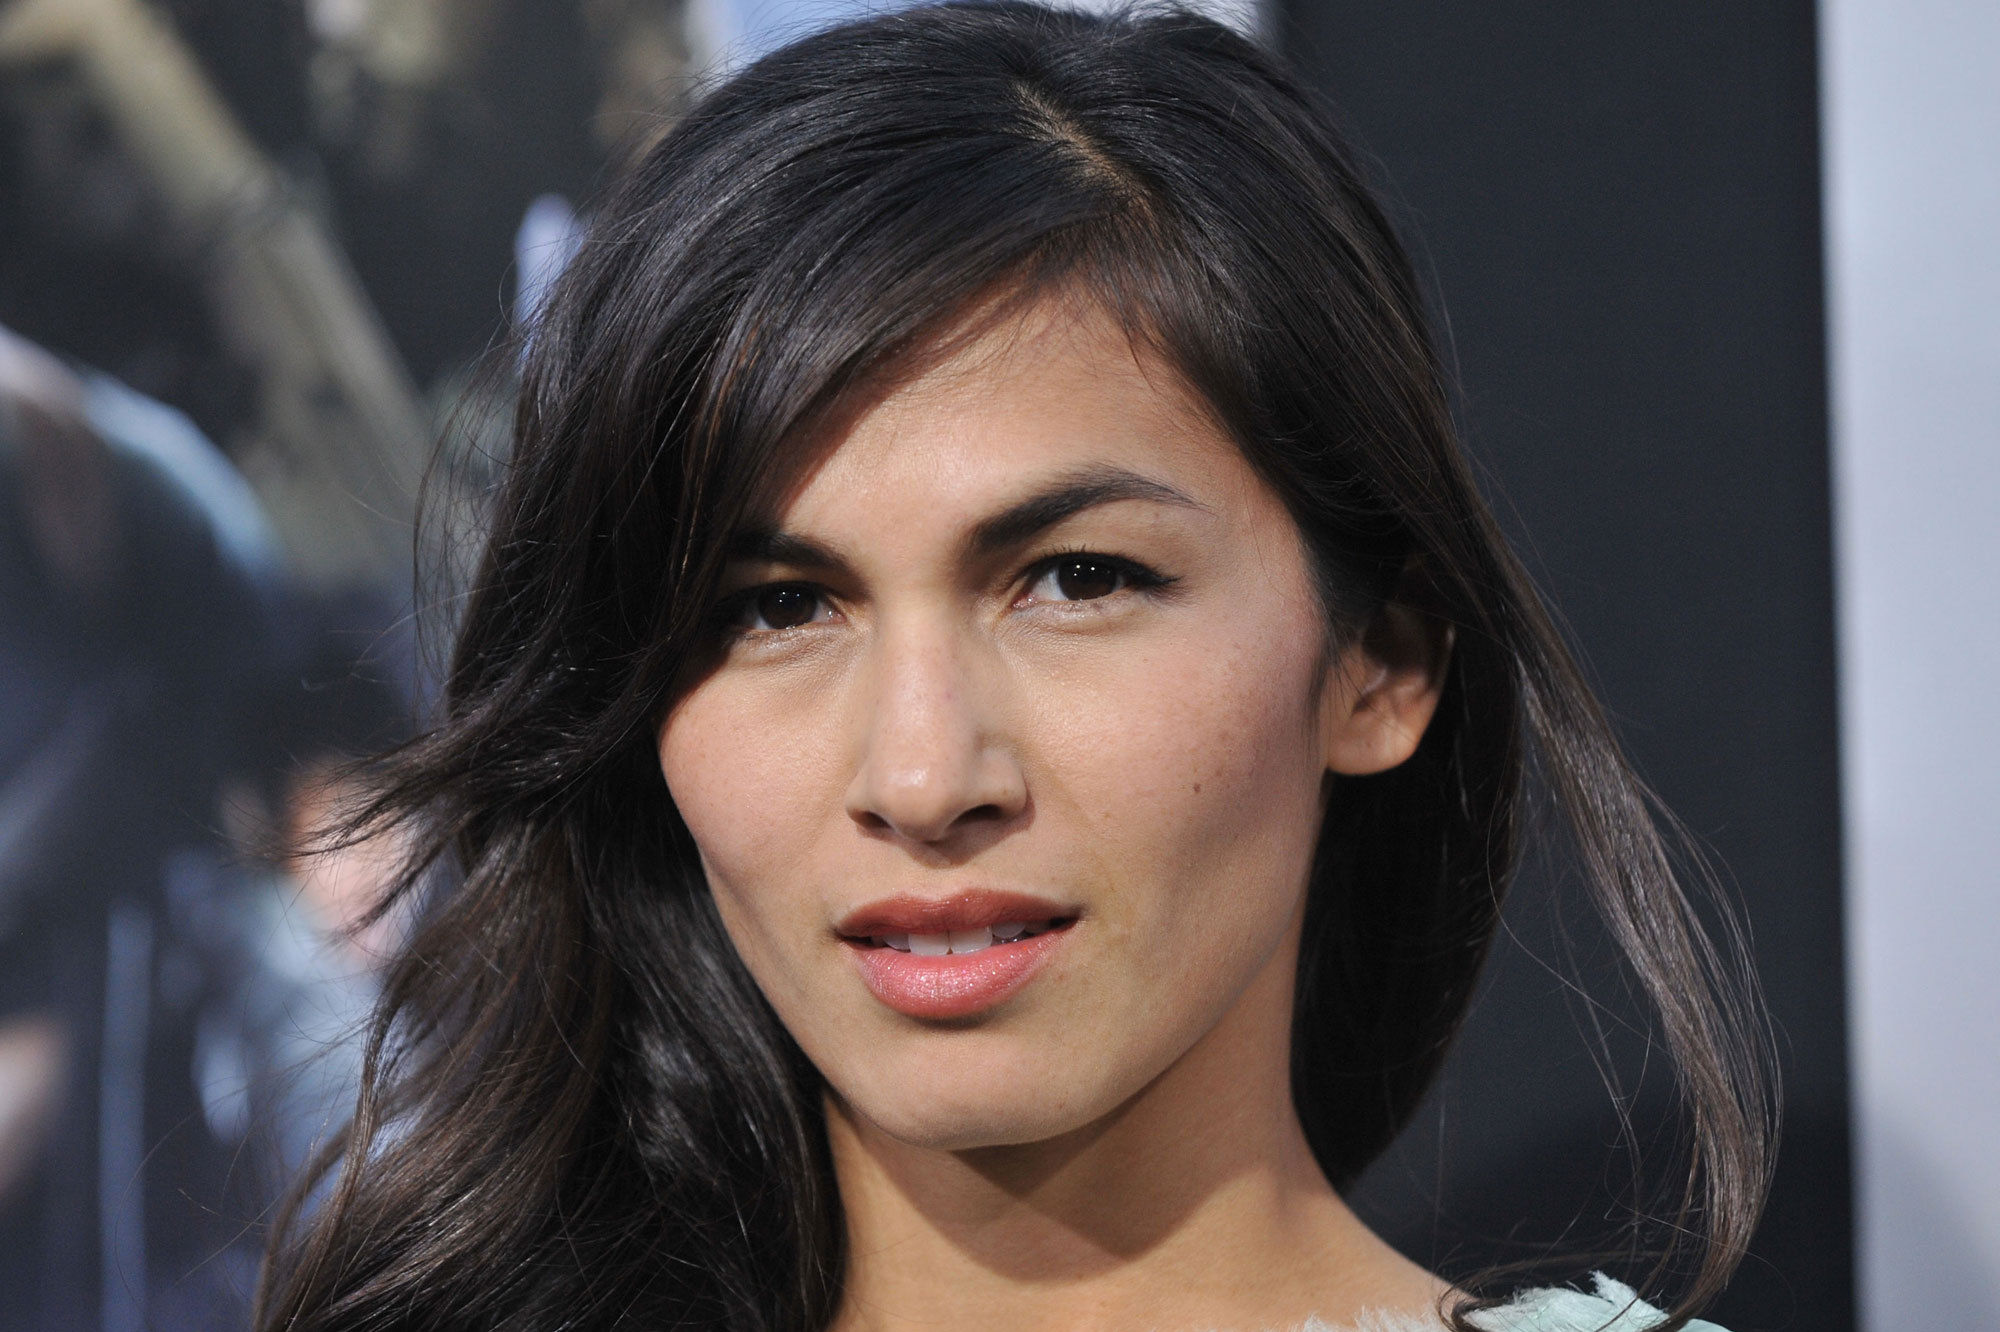 2000x1332 - Elodie Yung Wallpapers 24